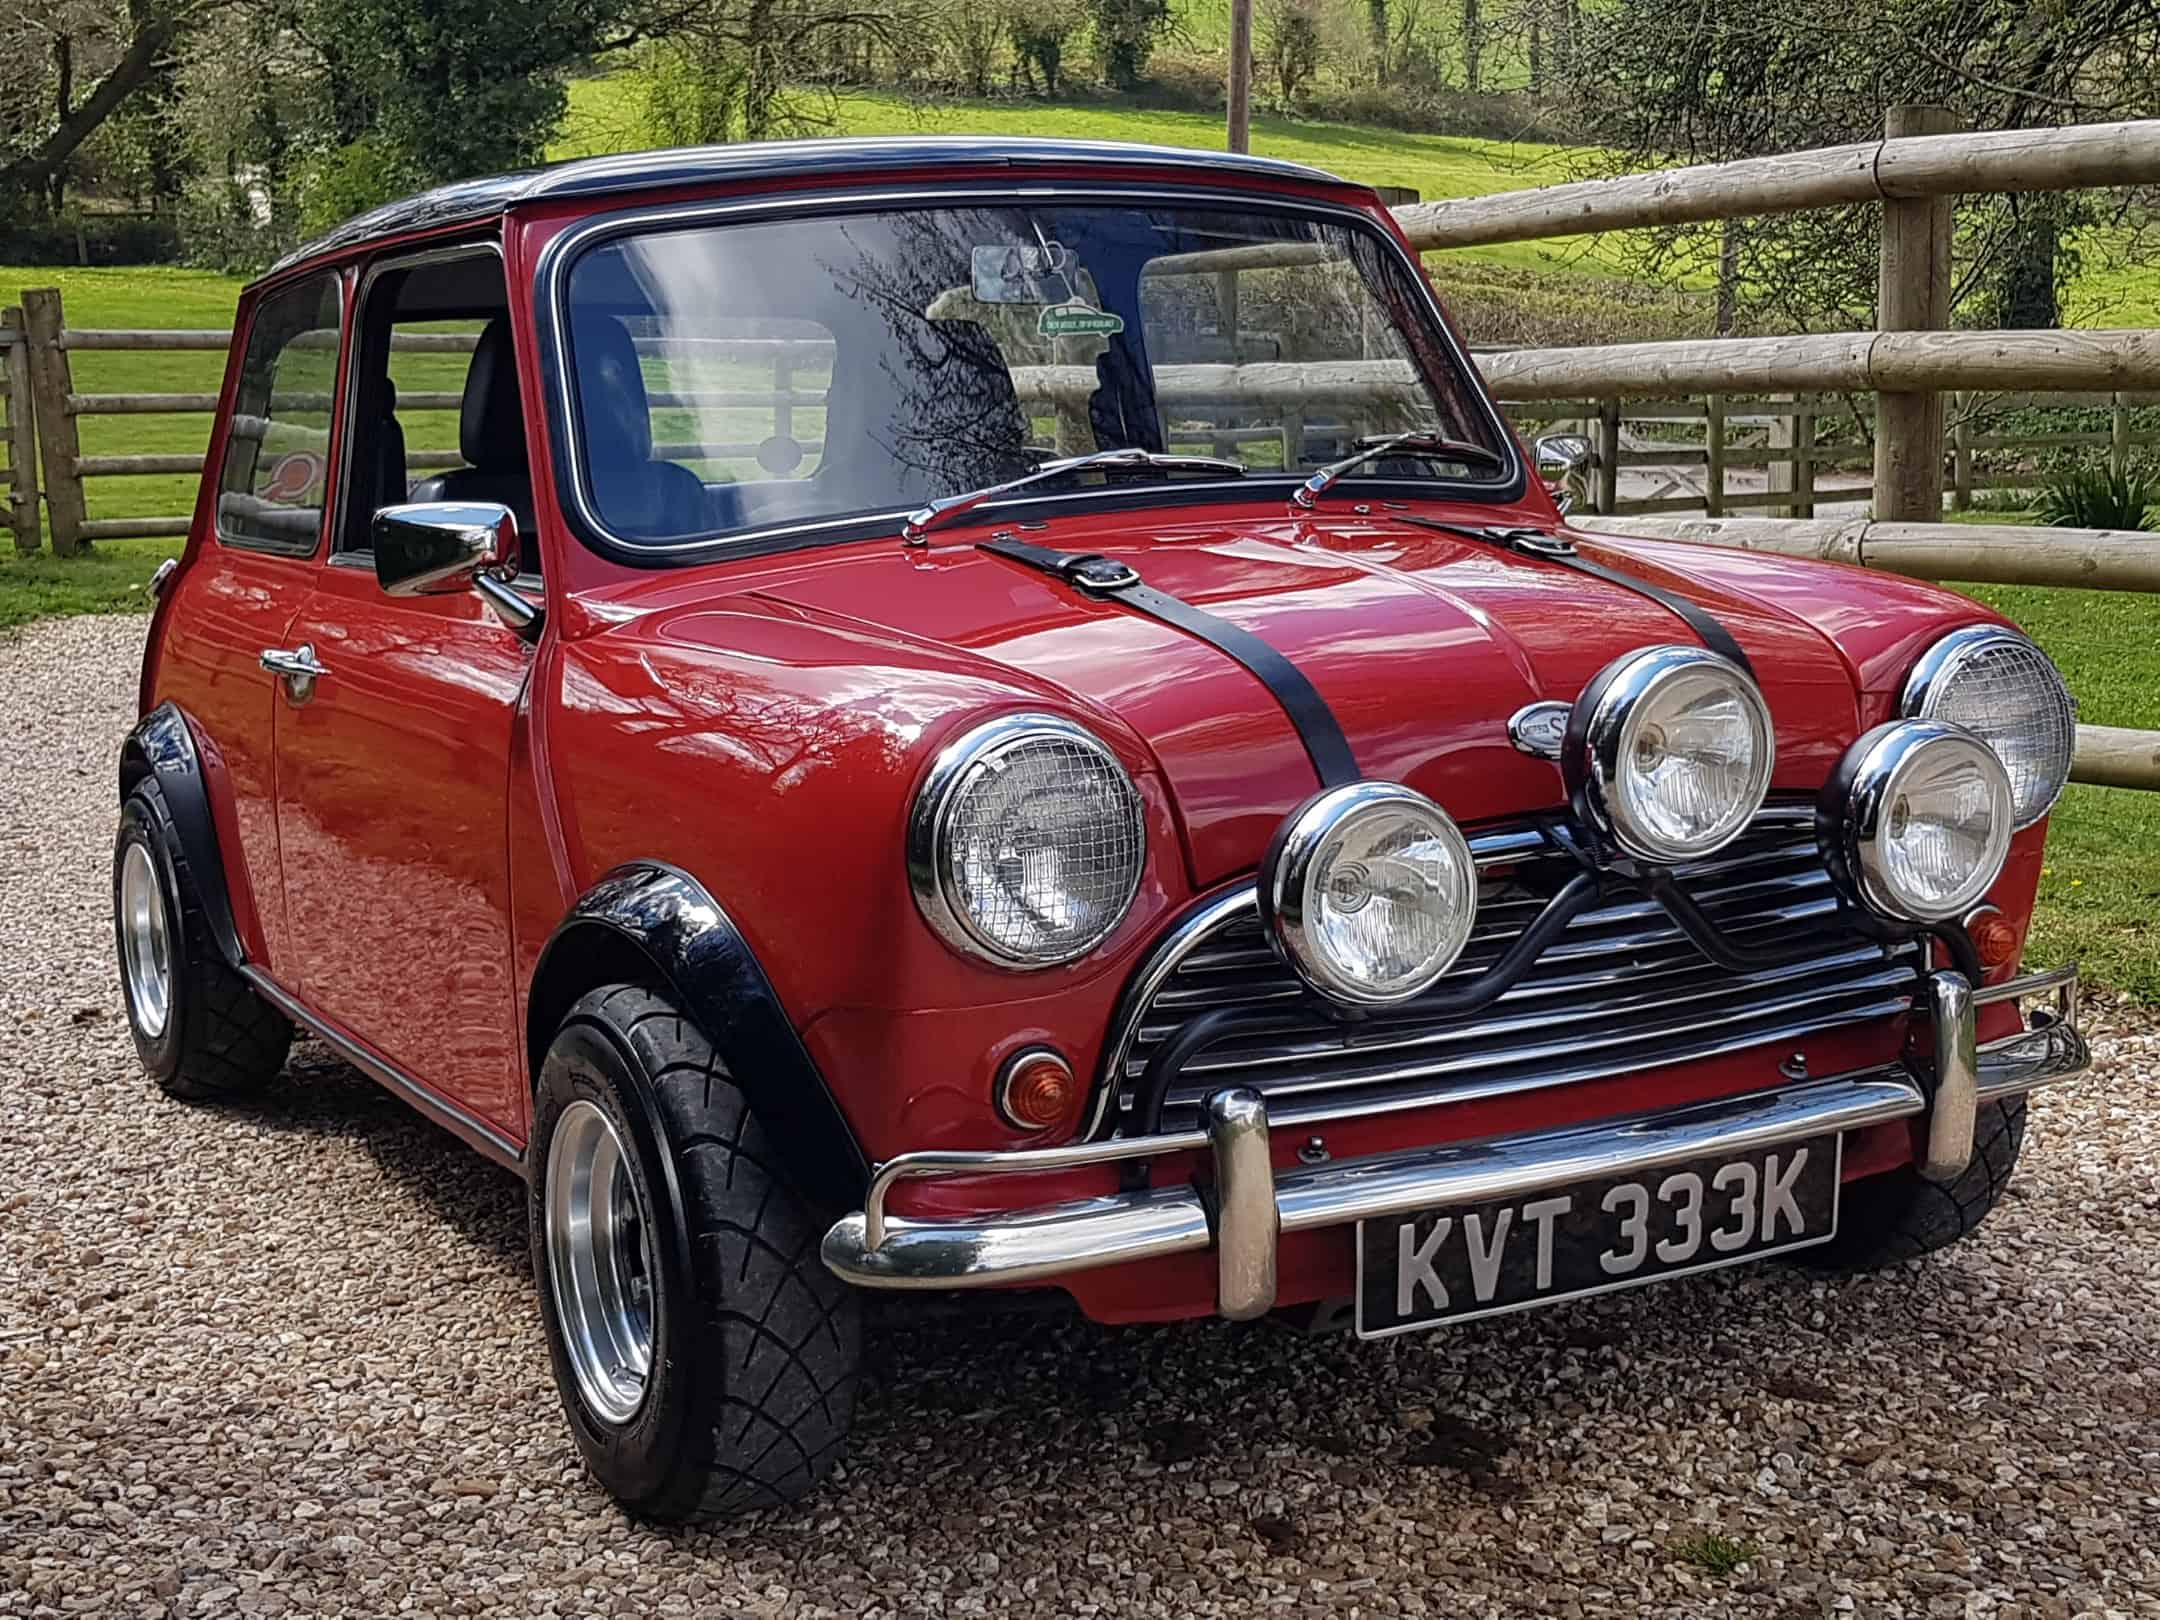 ** NOW SOLD ** 1971 Morris Mini 1275 cc Injection.